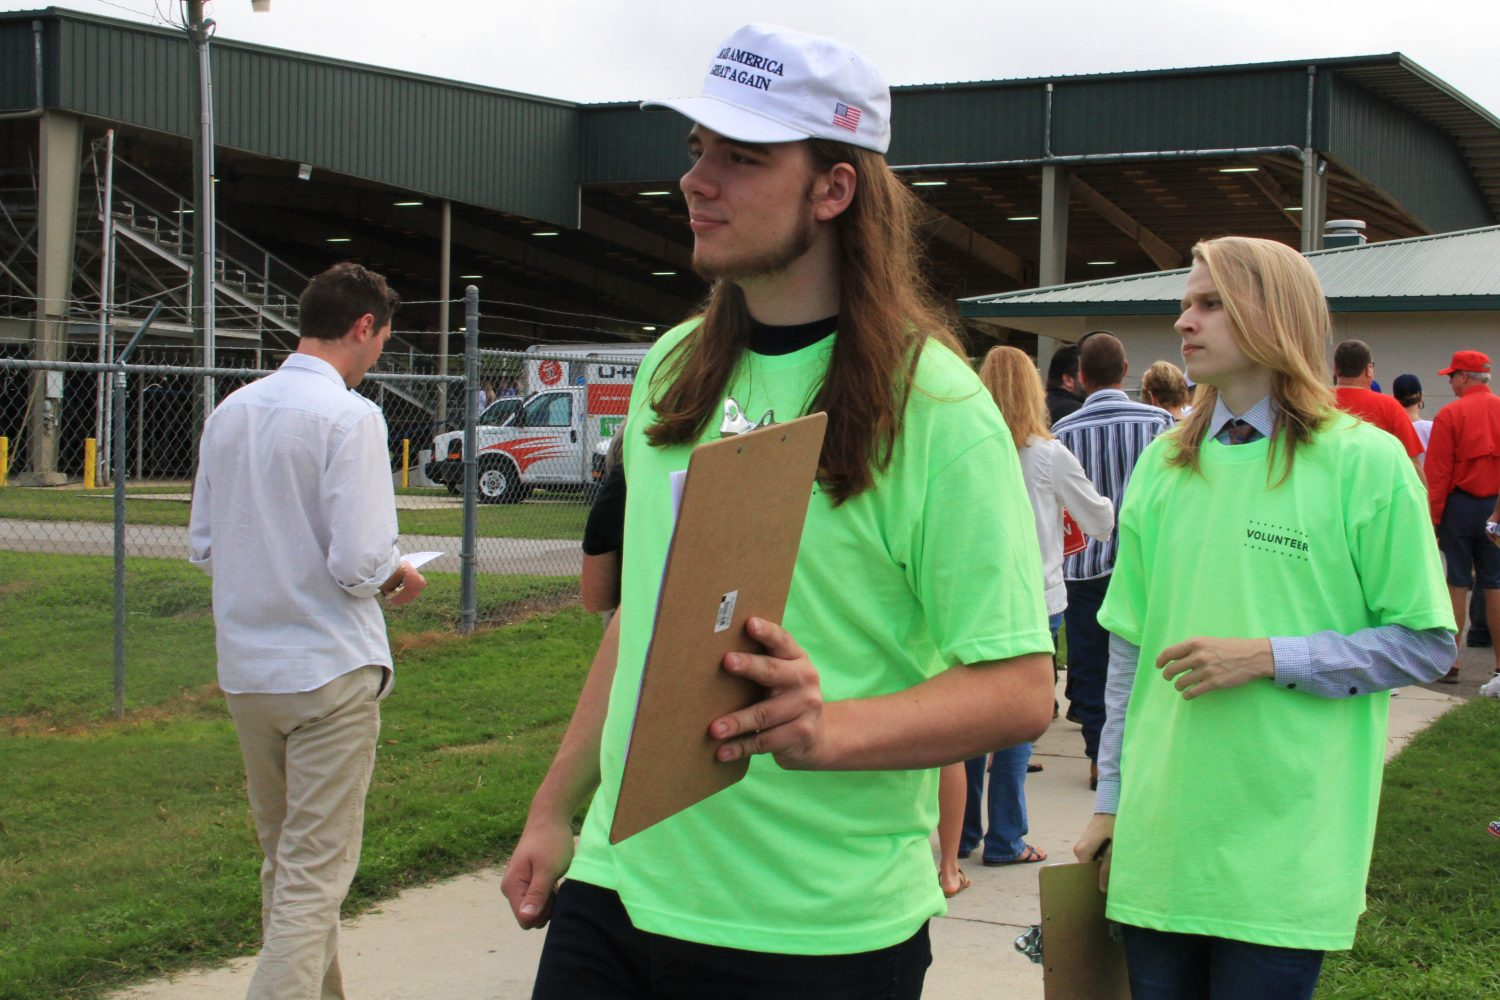 """College students Simon Dickerman (left) and Jacob Waitfield register people to receive absentee ballots. Dickerman said that most of the people he had talked to seemed """"skeptical,"""" and that several had told him that they didn't believe their votes would be counted if they didn't cast them in person."""